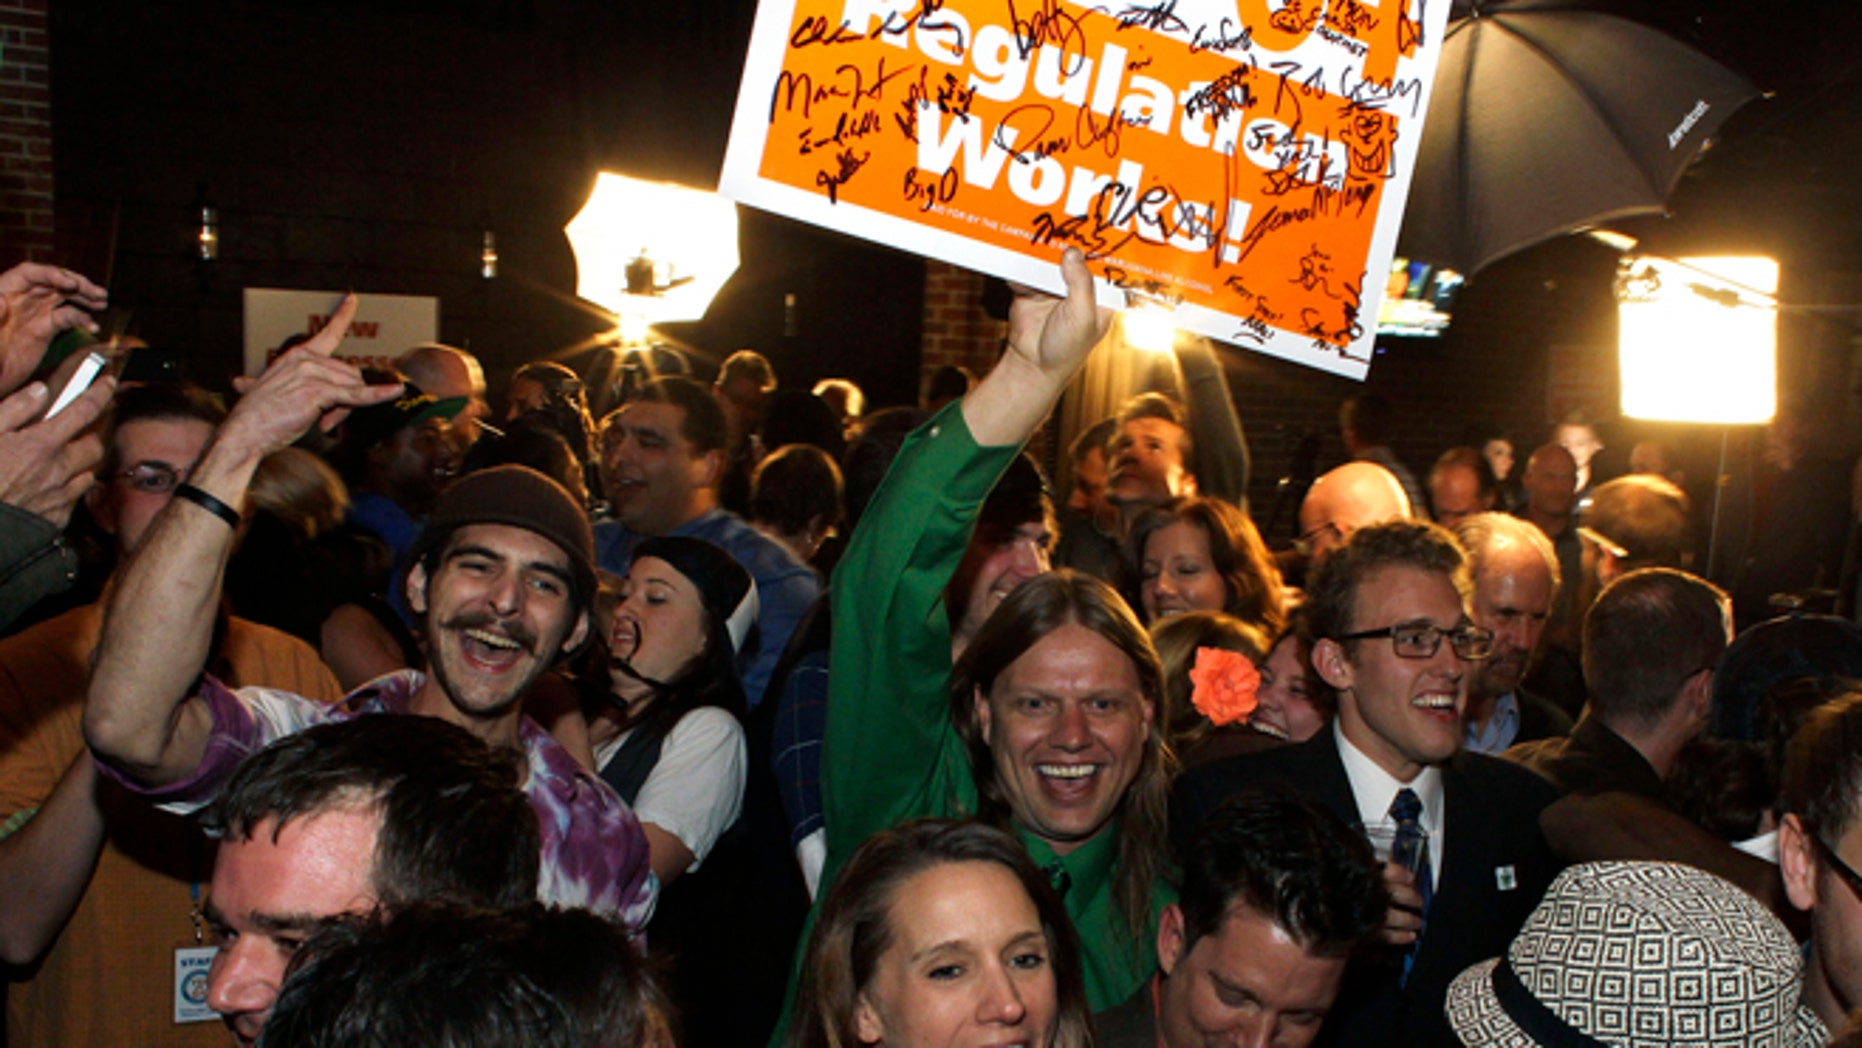 Nov. 6, 2012: People attending an Amendment 64 watch party in a bar celebrate after a local television station announced the marijuana amendment's passage, in Denver, Colo.